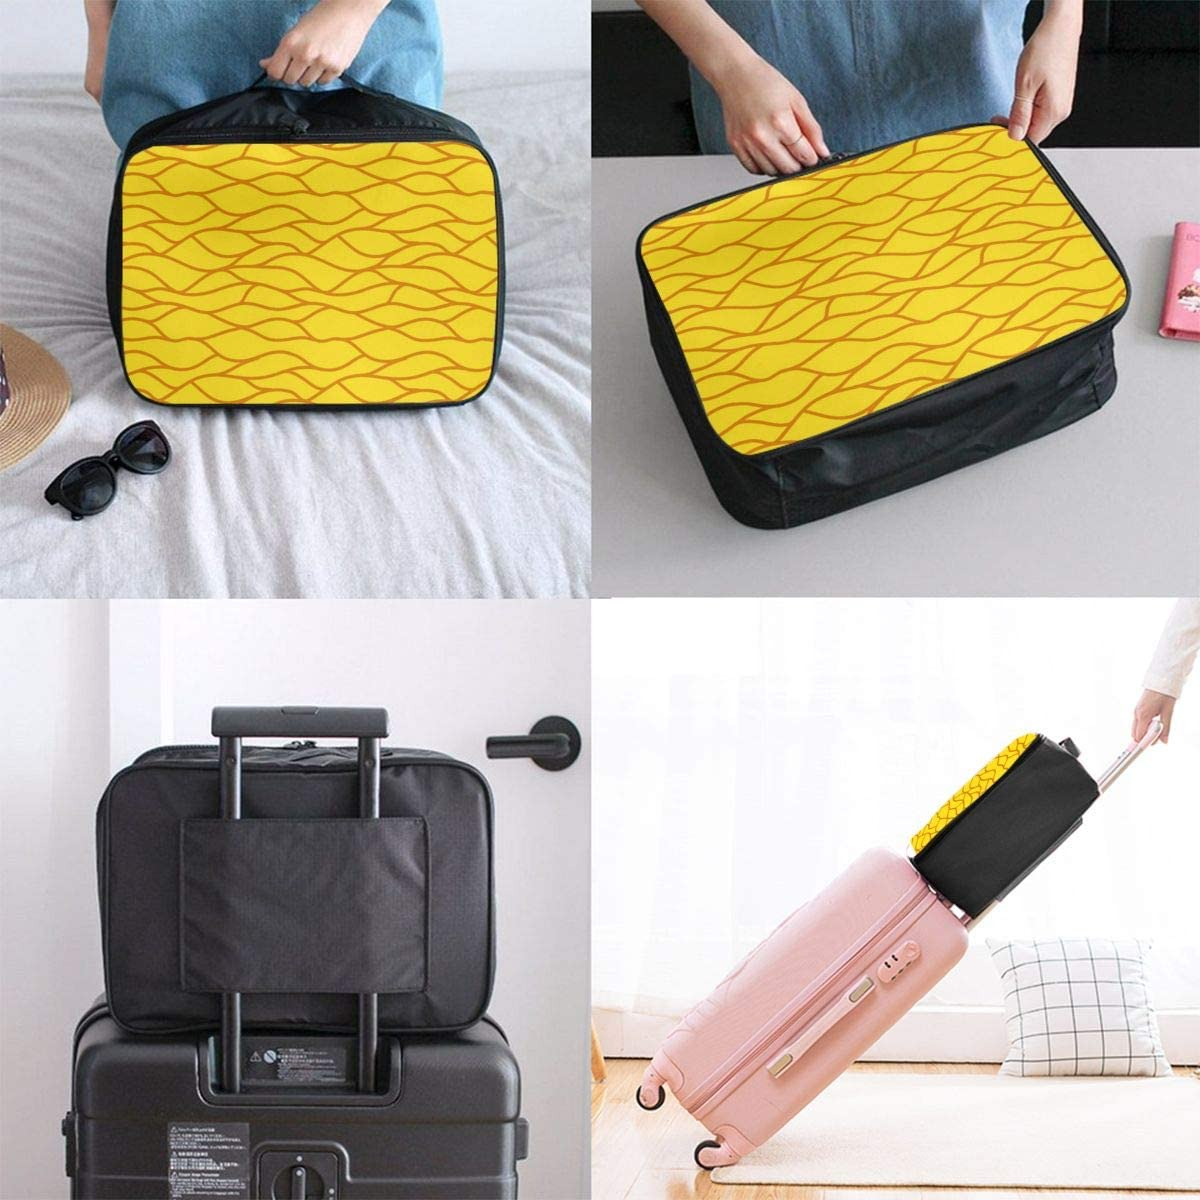 Yunshm Irregular Geometric Stripes Yellow Customized Trolley Handbag Waterproof Unisex Large Capacity For Business Travel Storage